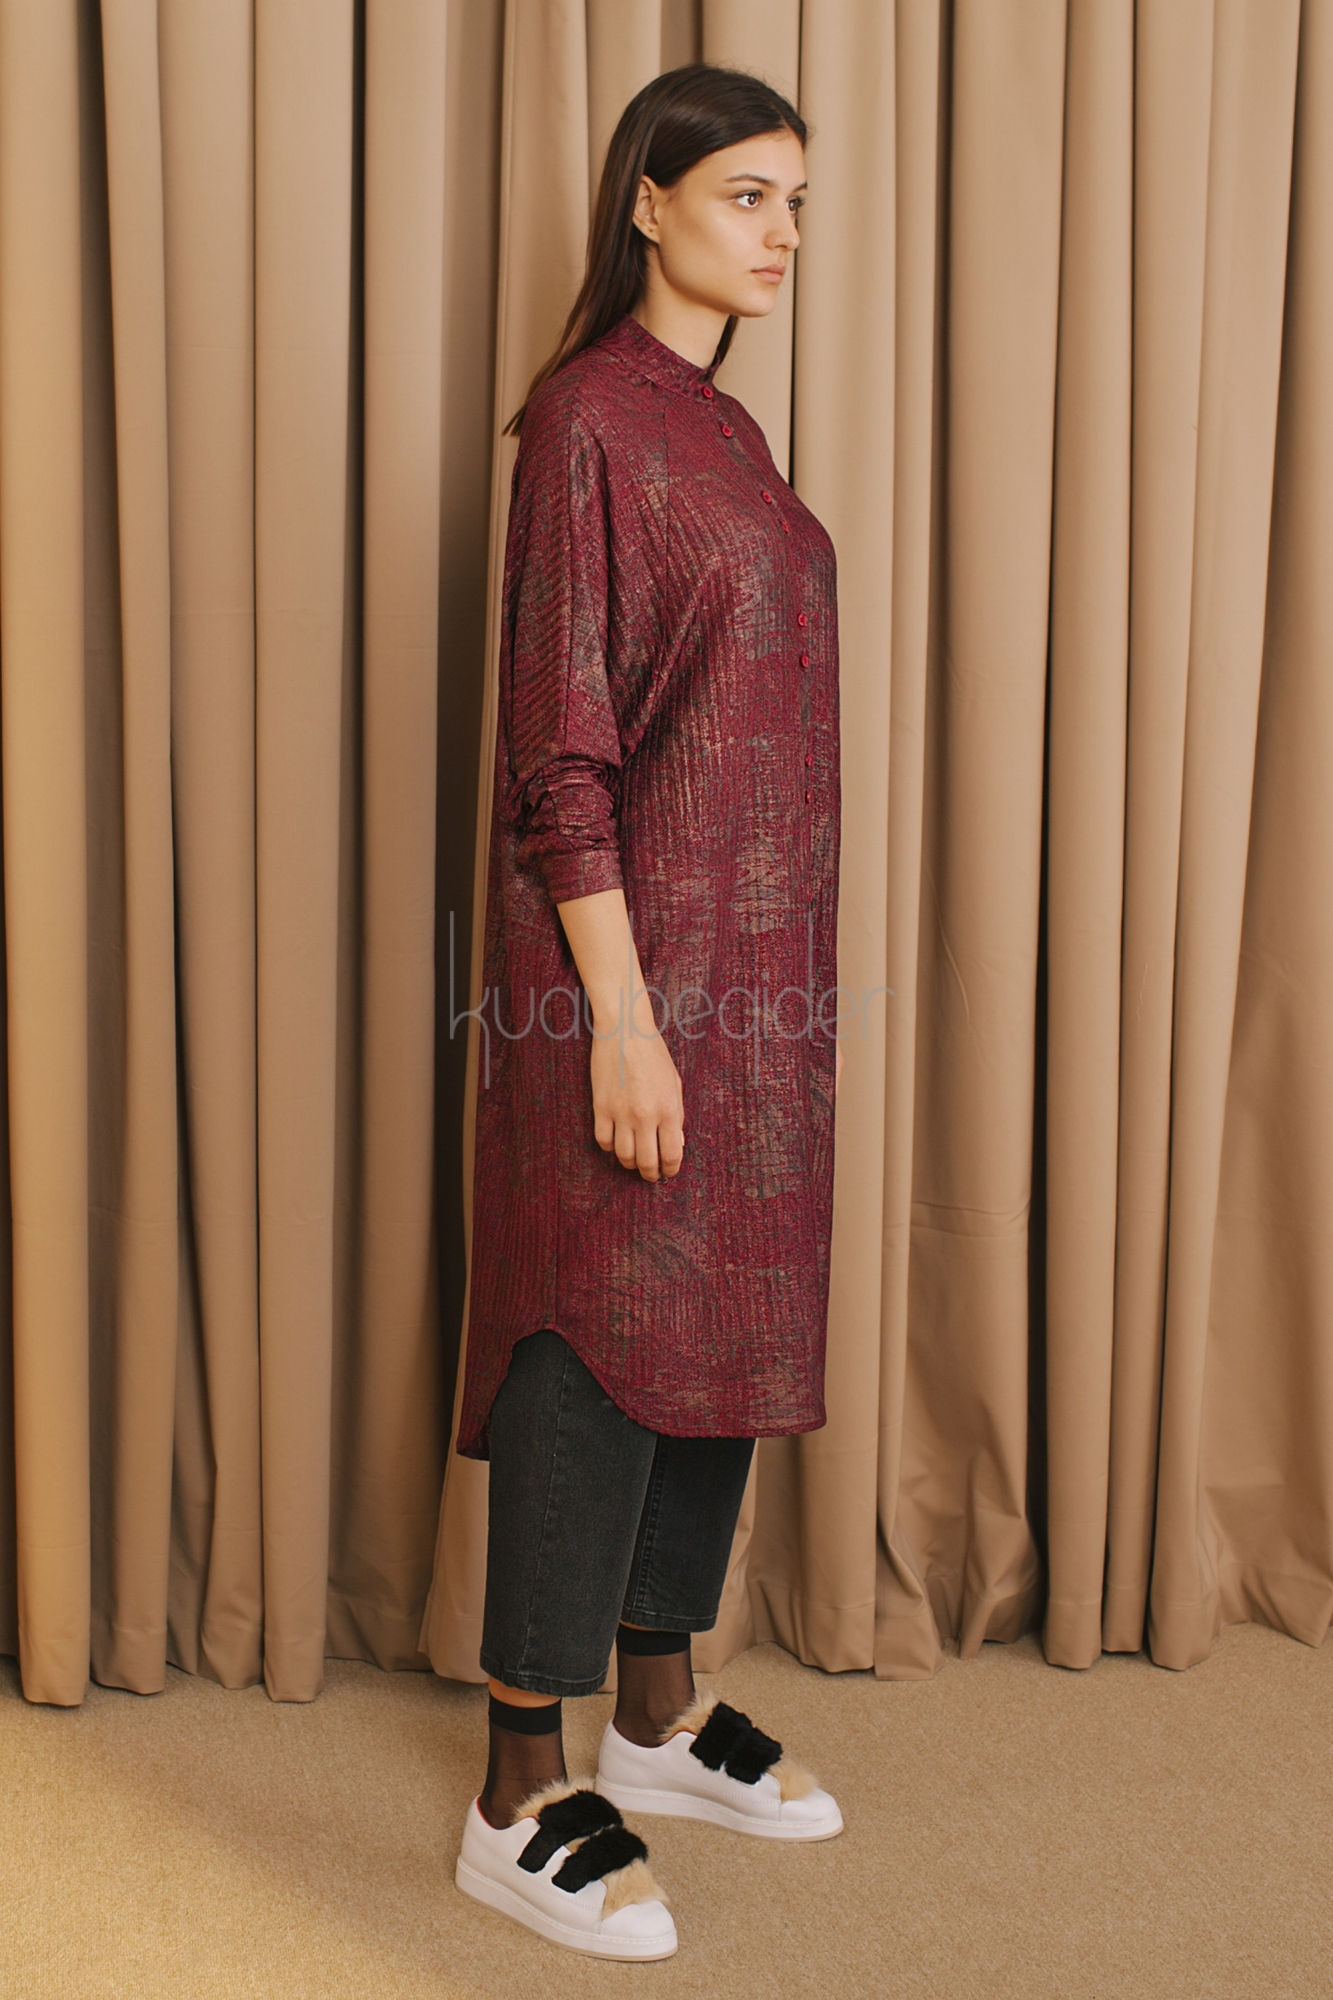 Kuaybe Gider - 5098 Tunik Bordo